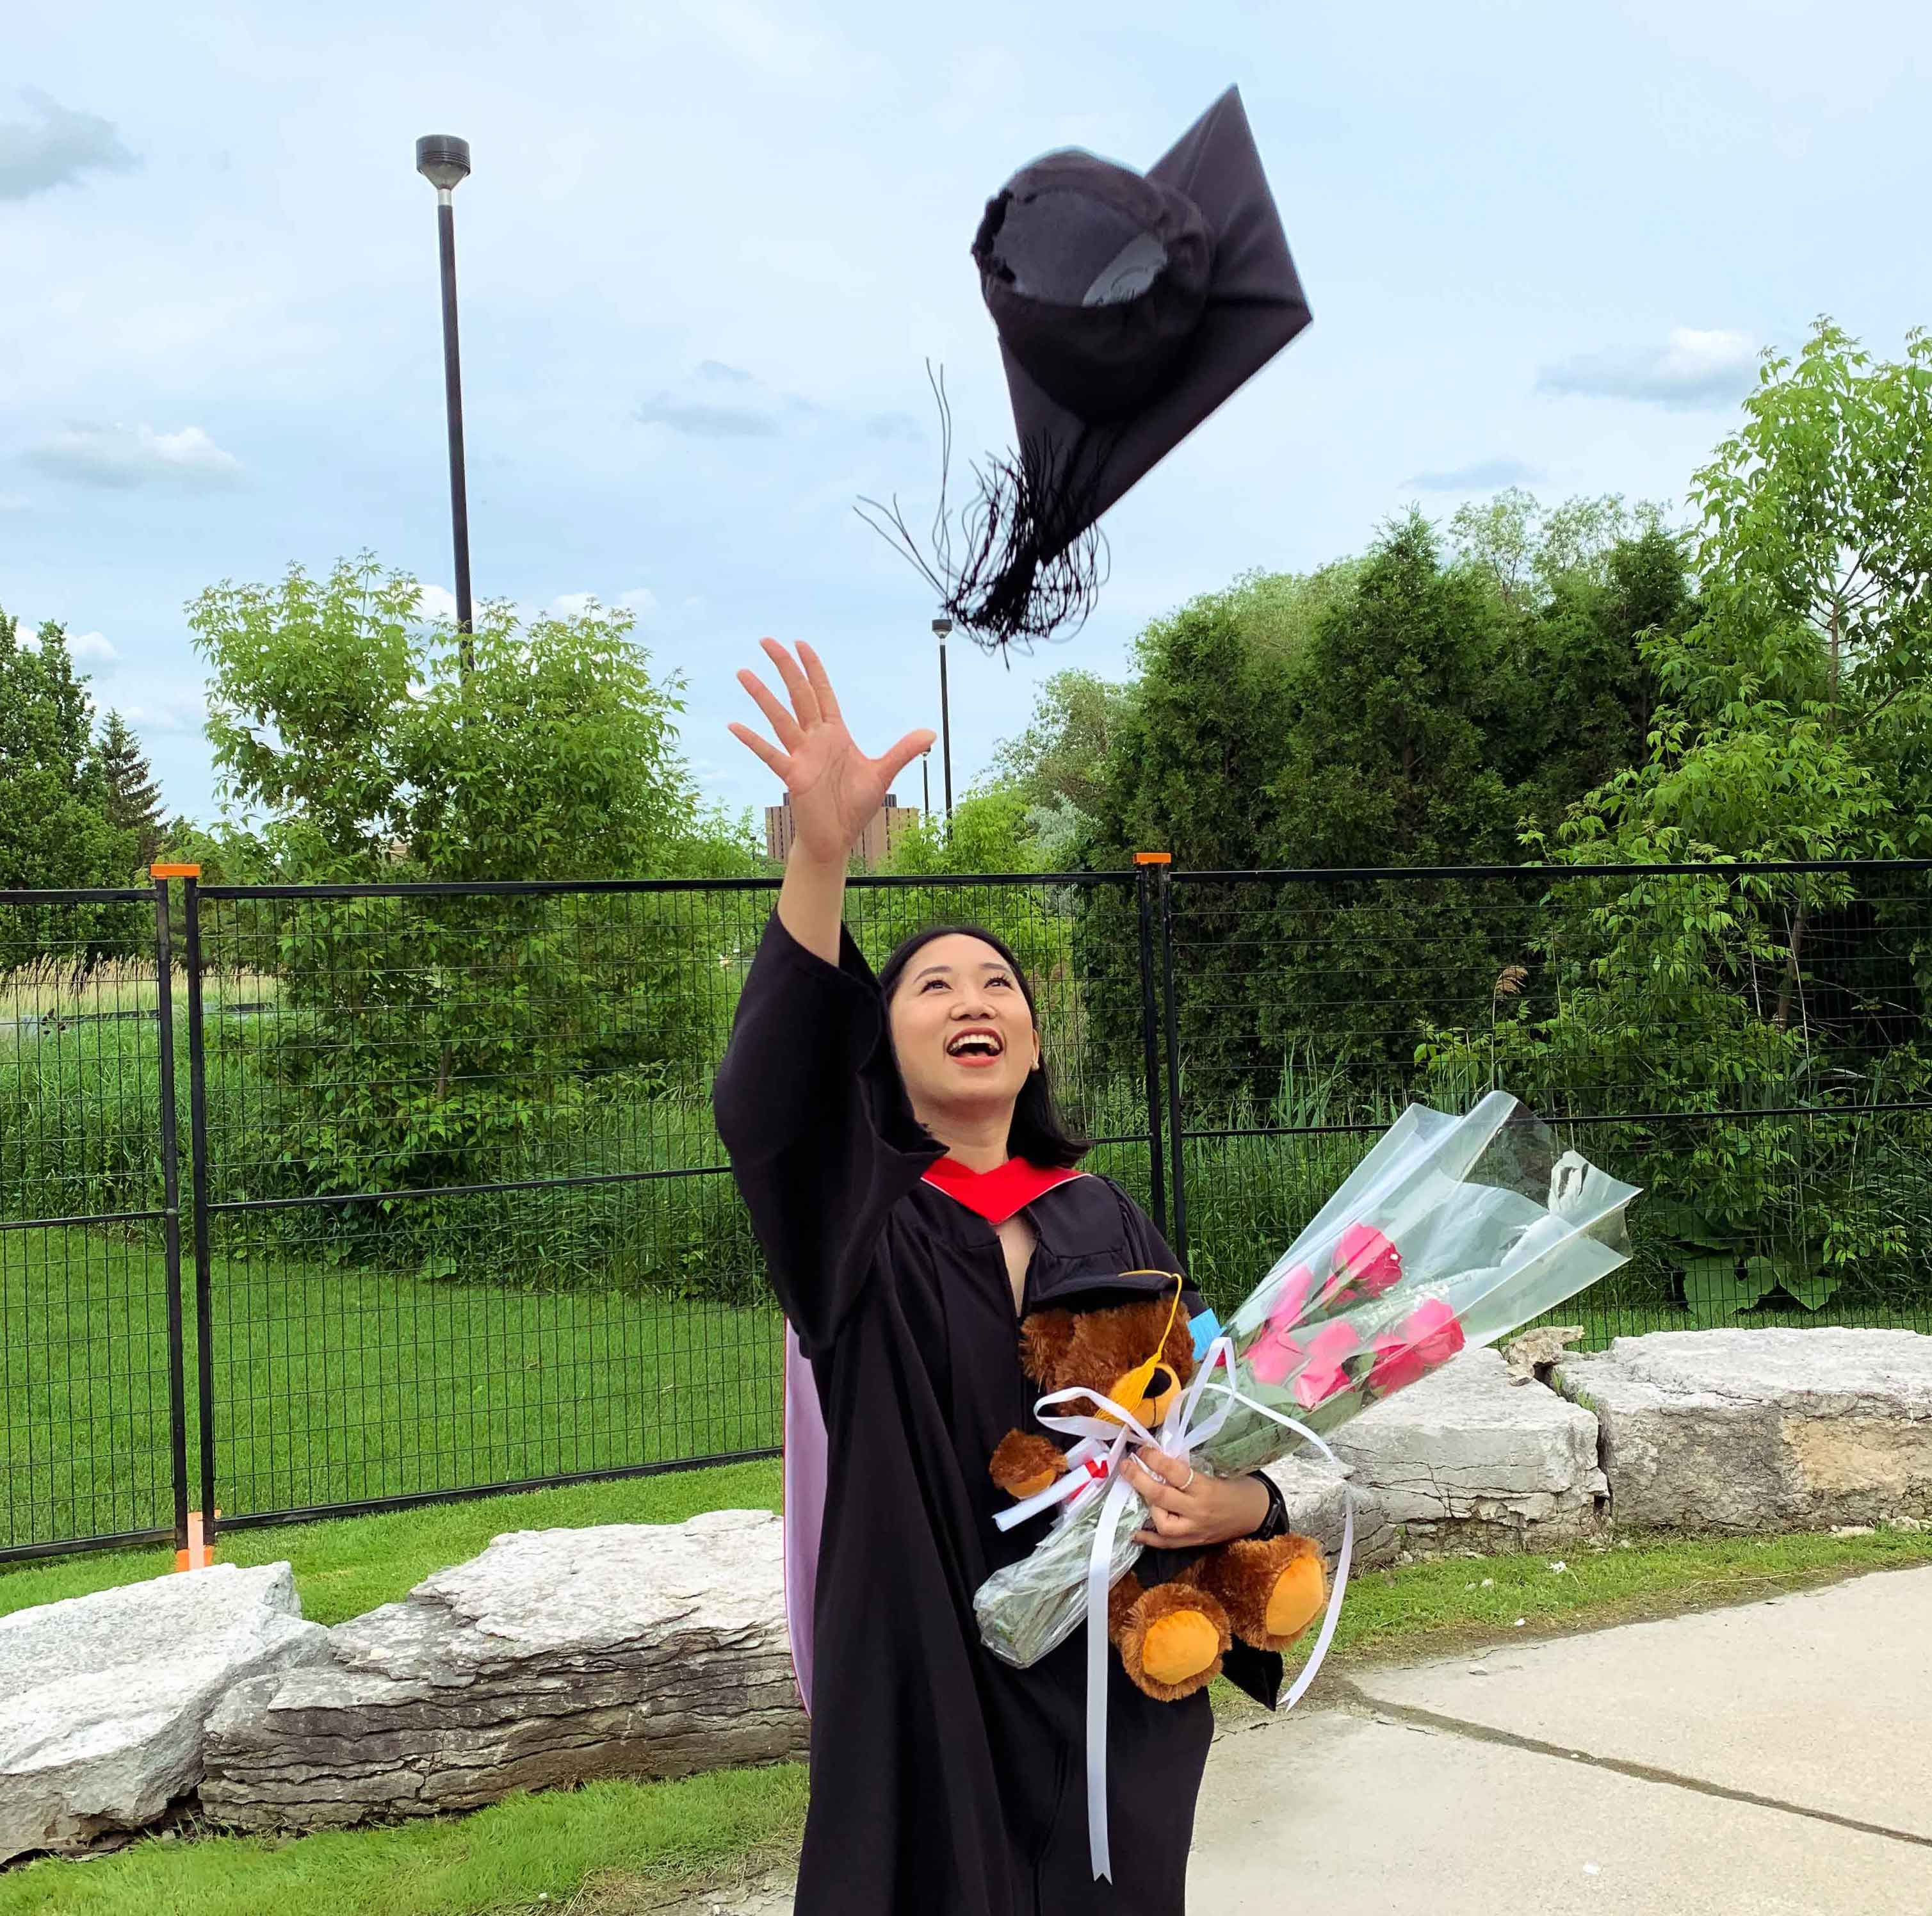 A Dahdaleh Institute intern who graduated throws her hat into the air